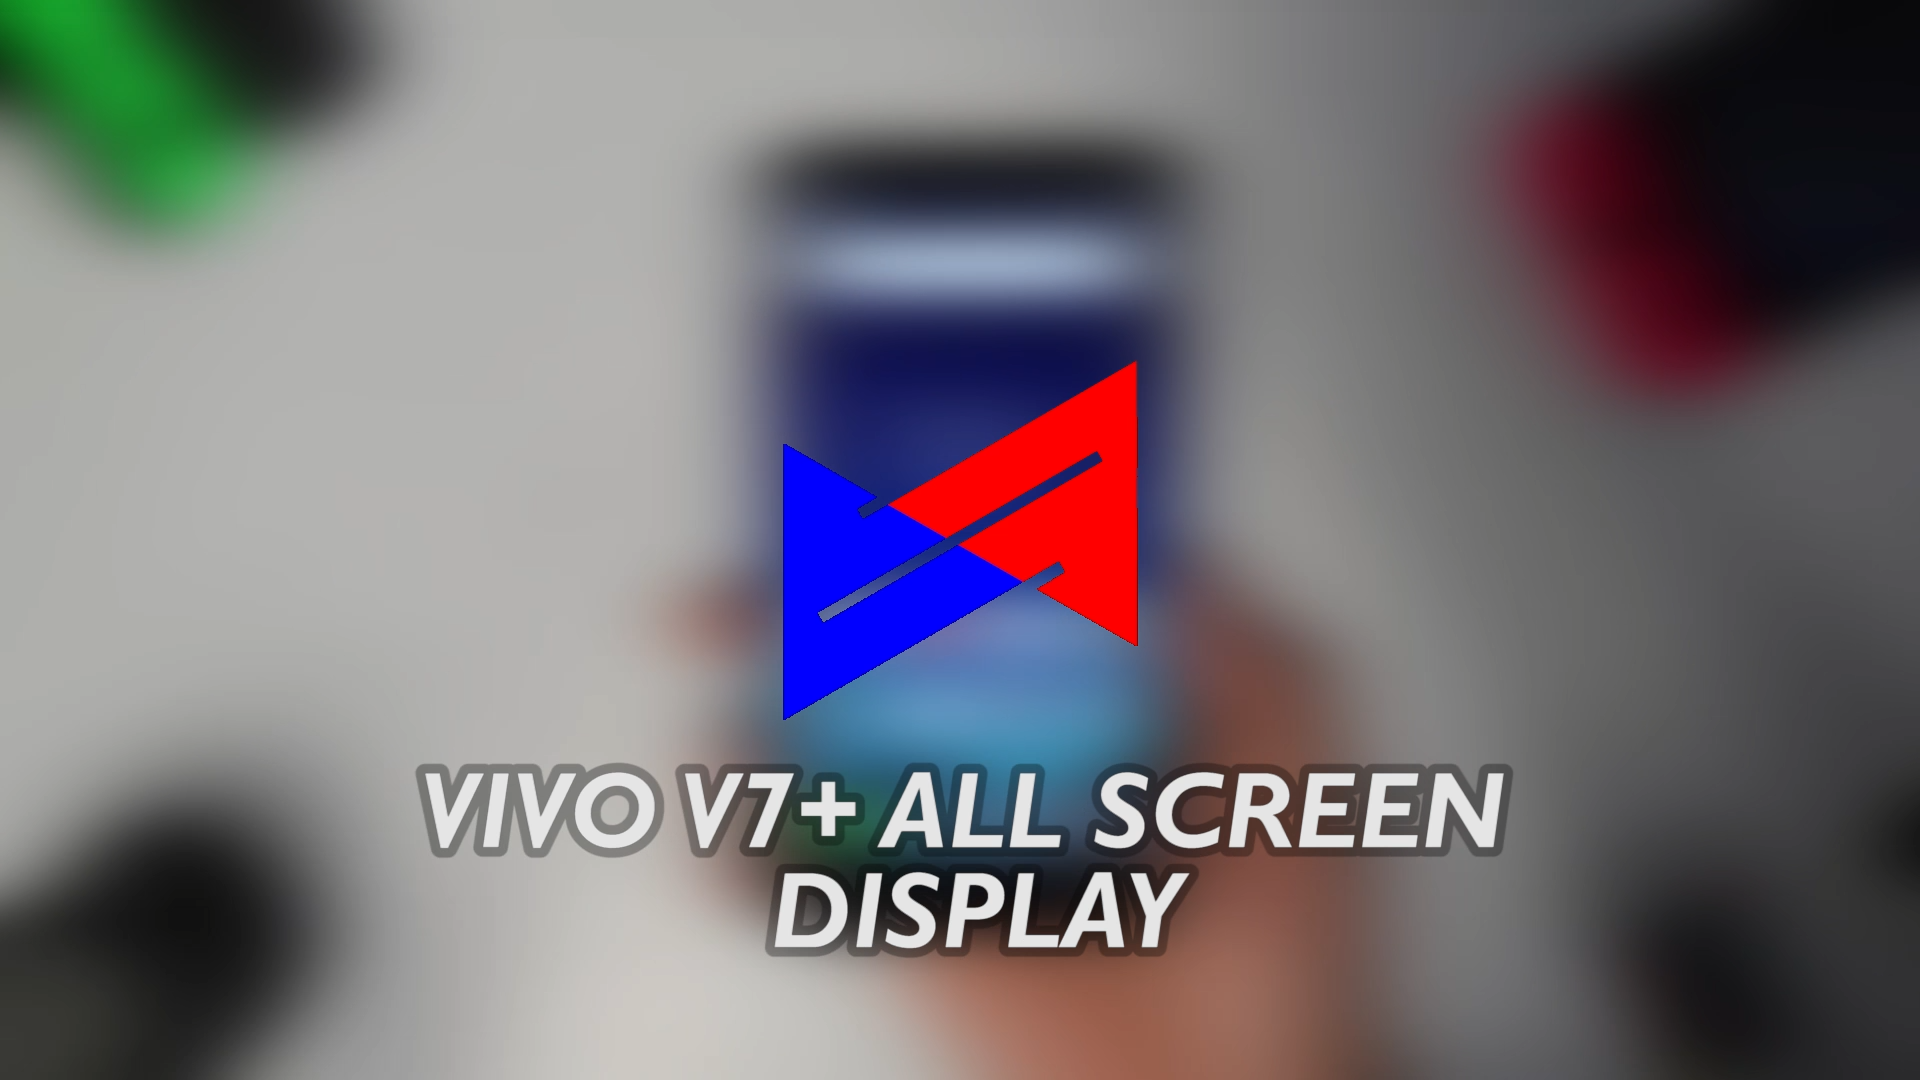 , VIVO V7+ All Screen Display lives up to its hype!, Gadget Pilipinas